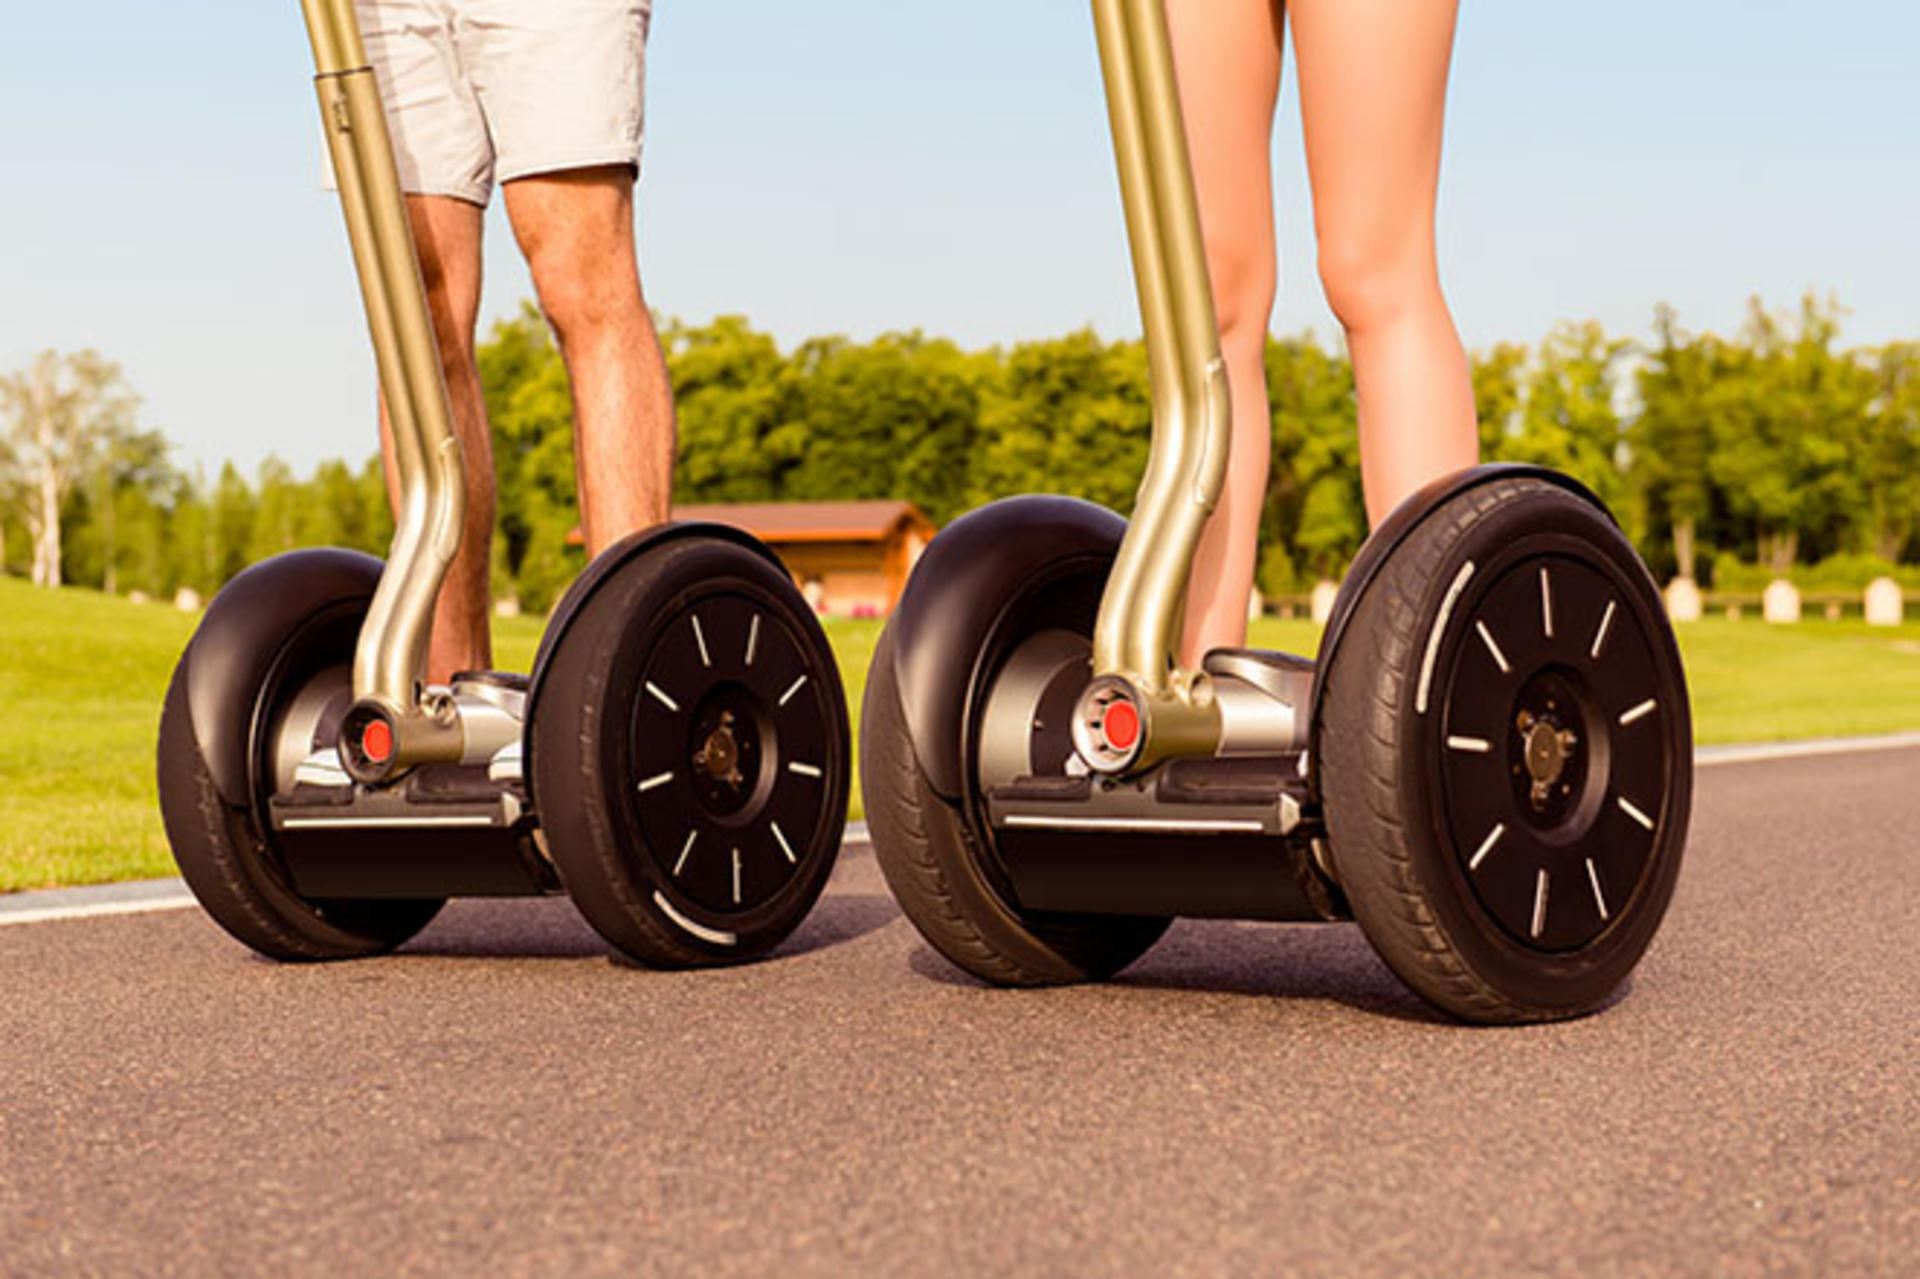 Segway ride - 2 people